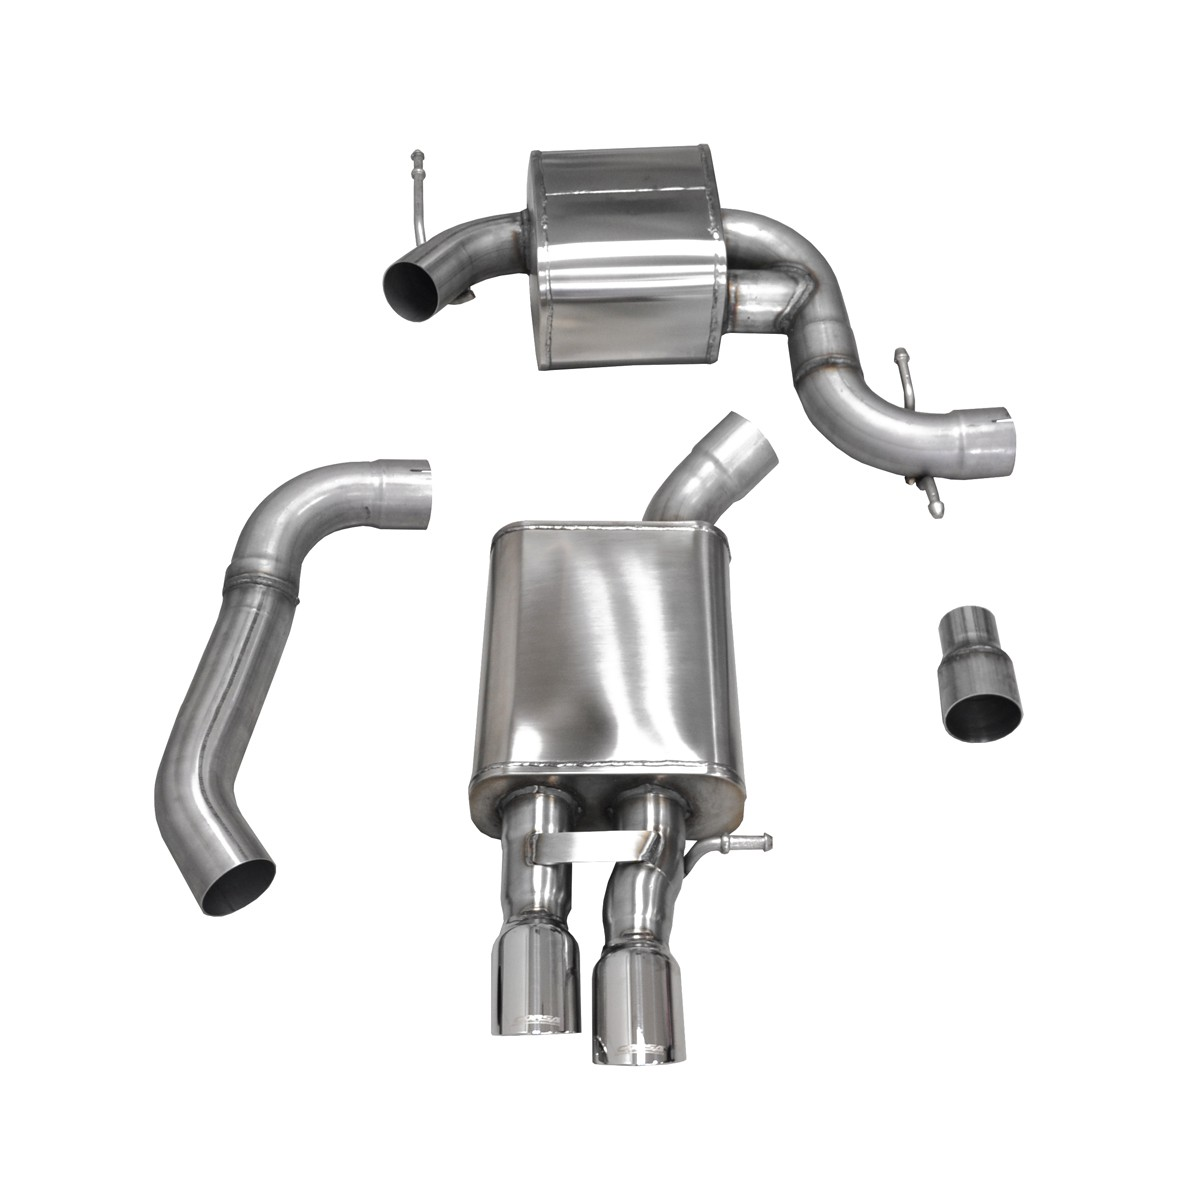 Corsa Performance MkV Volkswagen Jetta/GLI 2.0T Cat-Back Exhaust System - Polished Tips